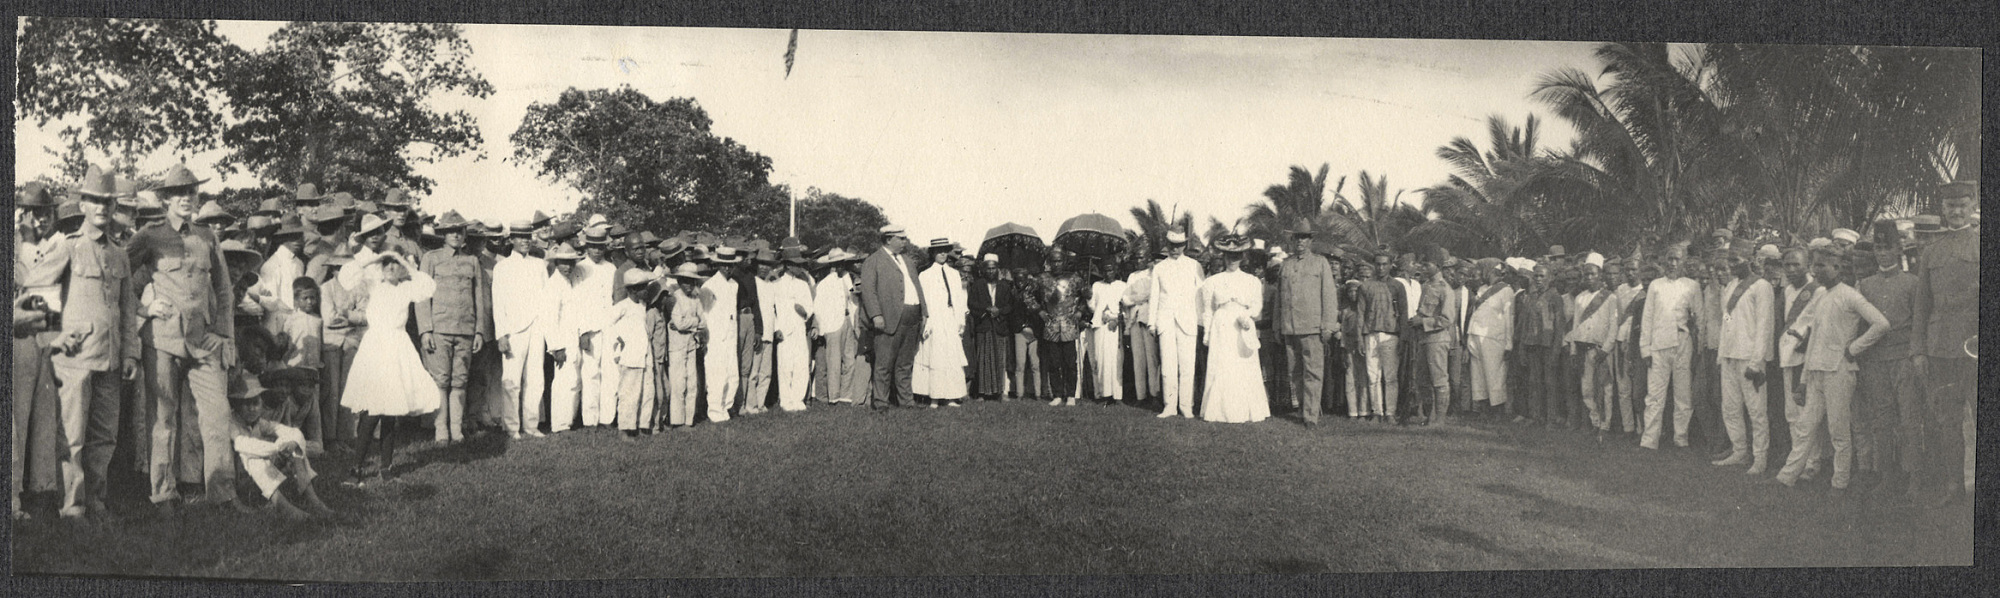 Zamboanga: Americans with Moro leaders at parade grounds. William H. Taft and Alice Roosevelt at center